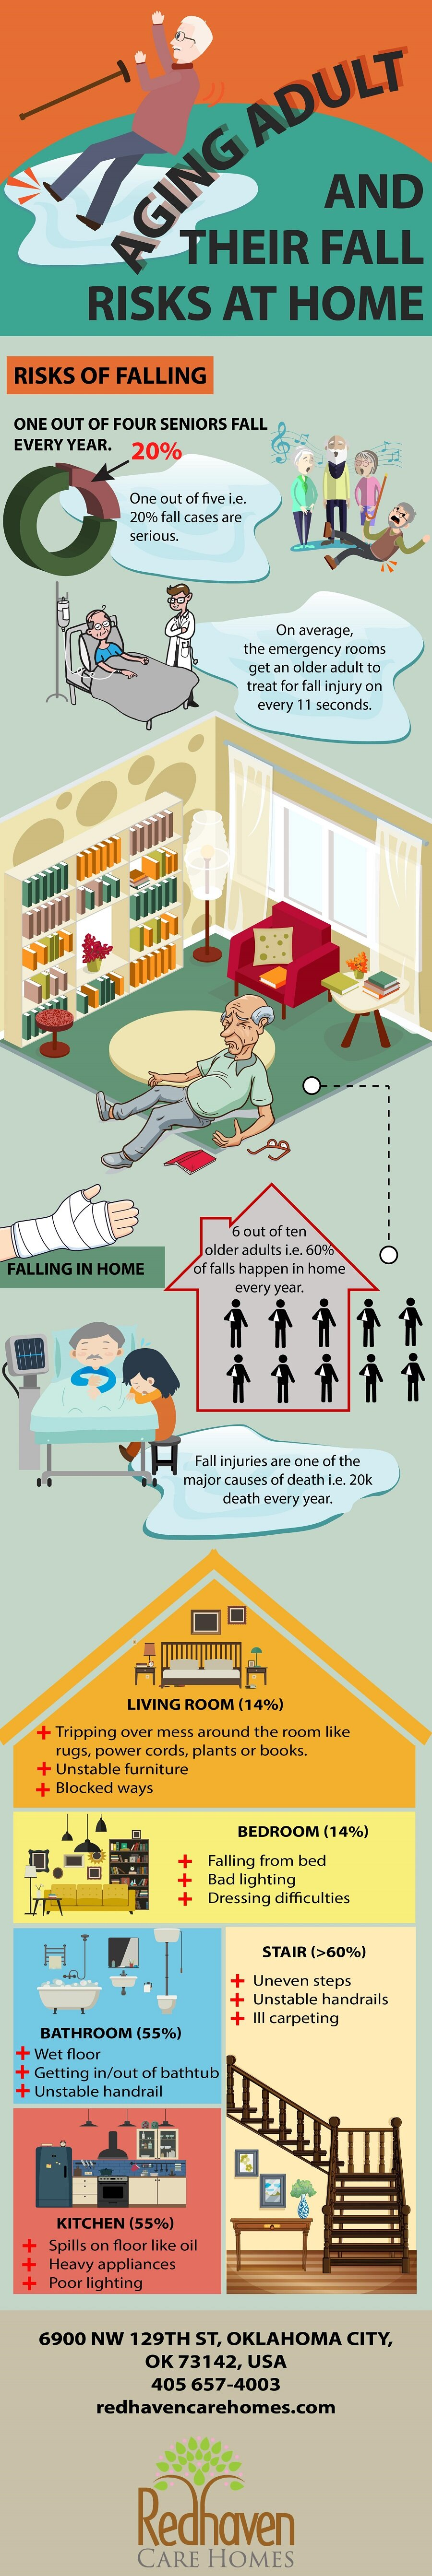 aging adult and their fall risk at home infographic